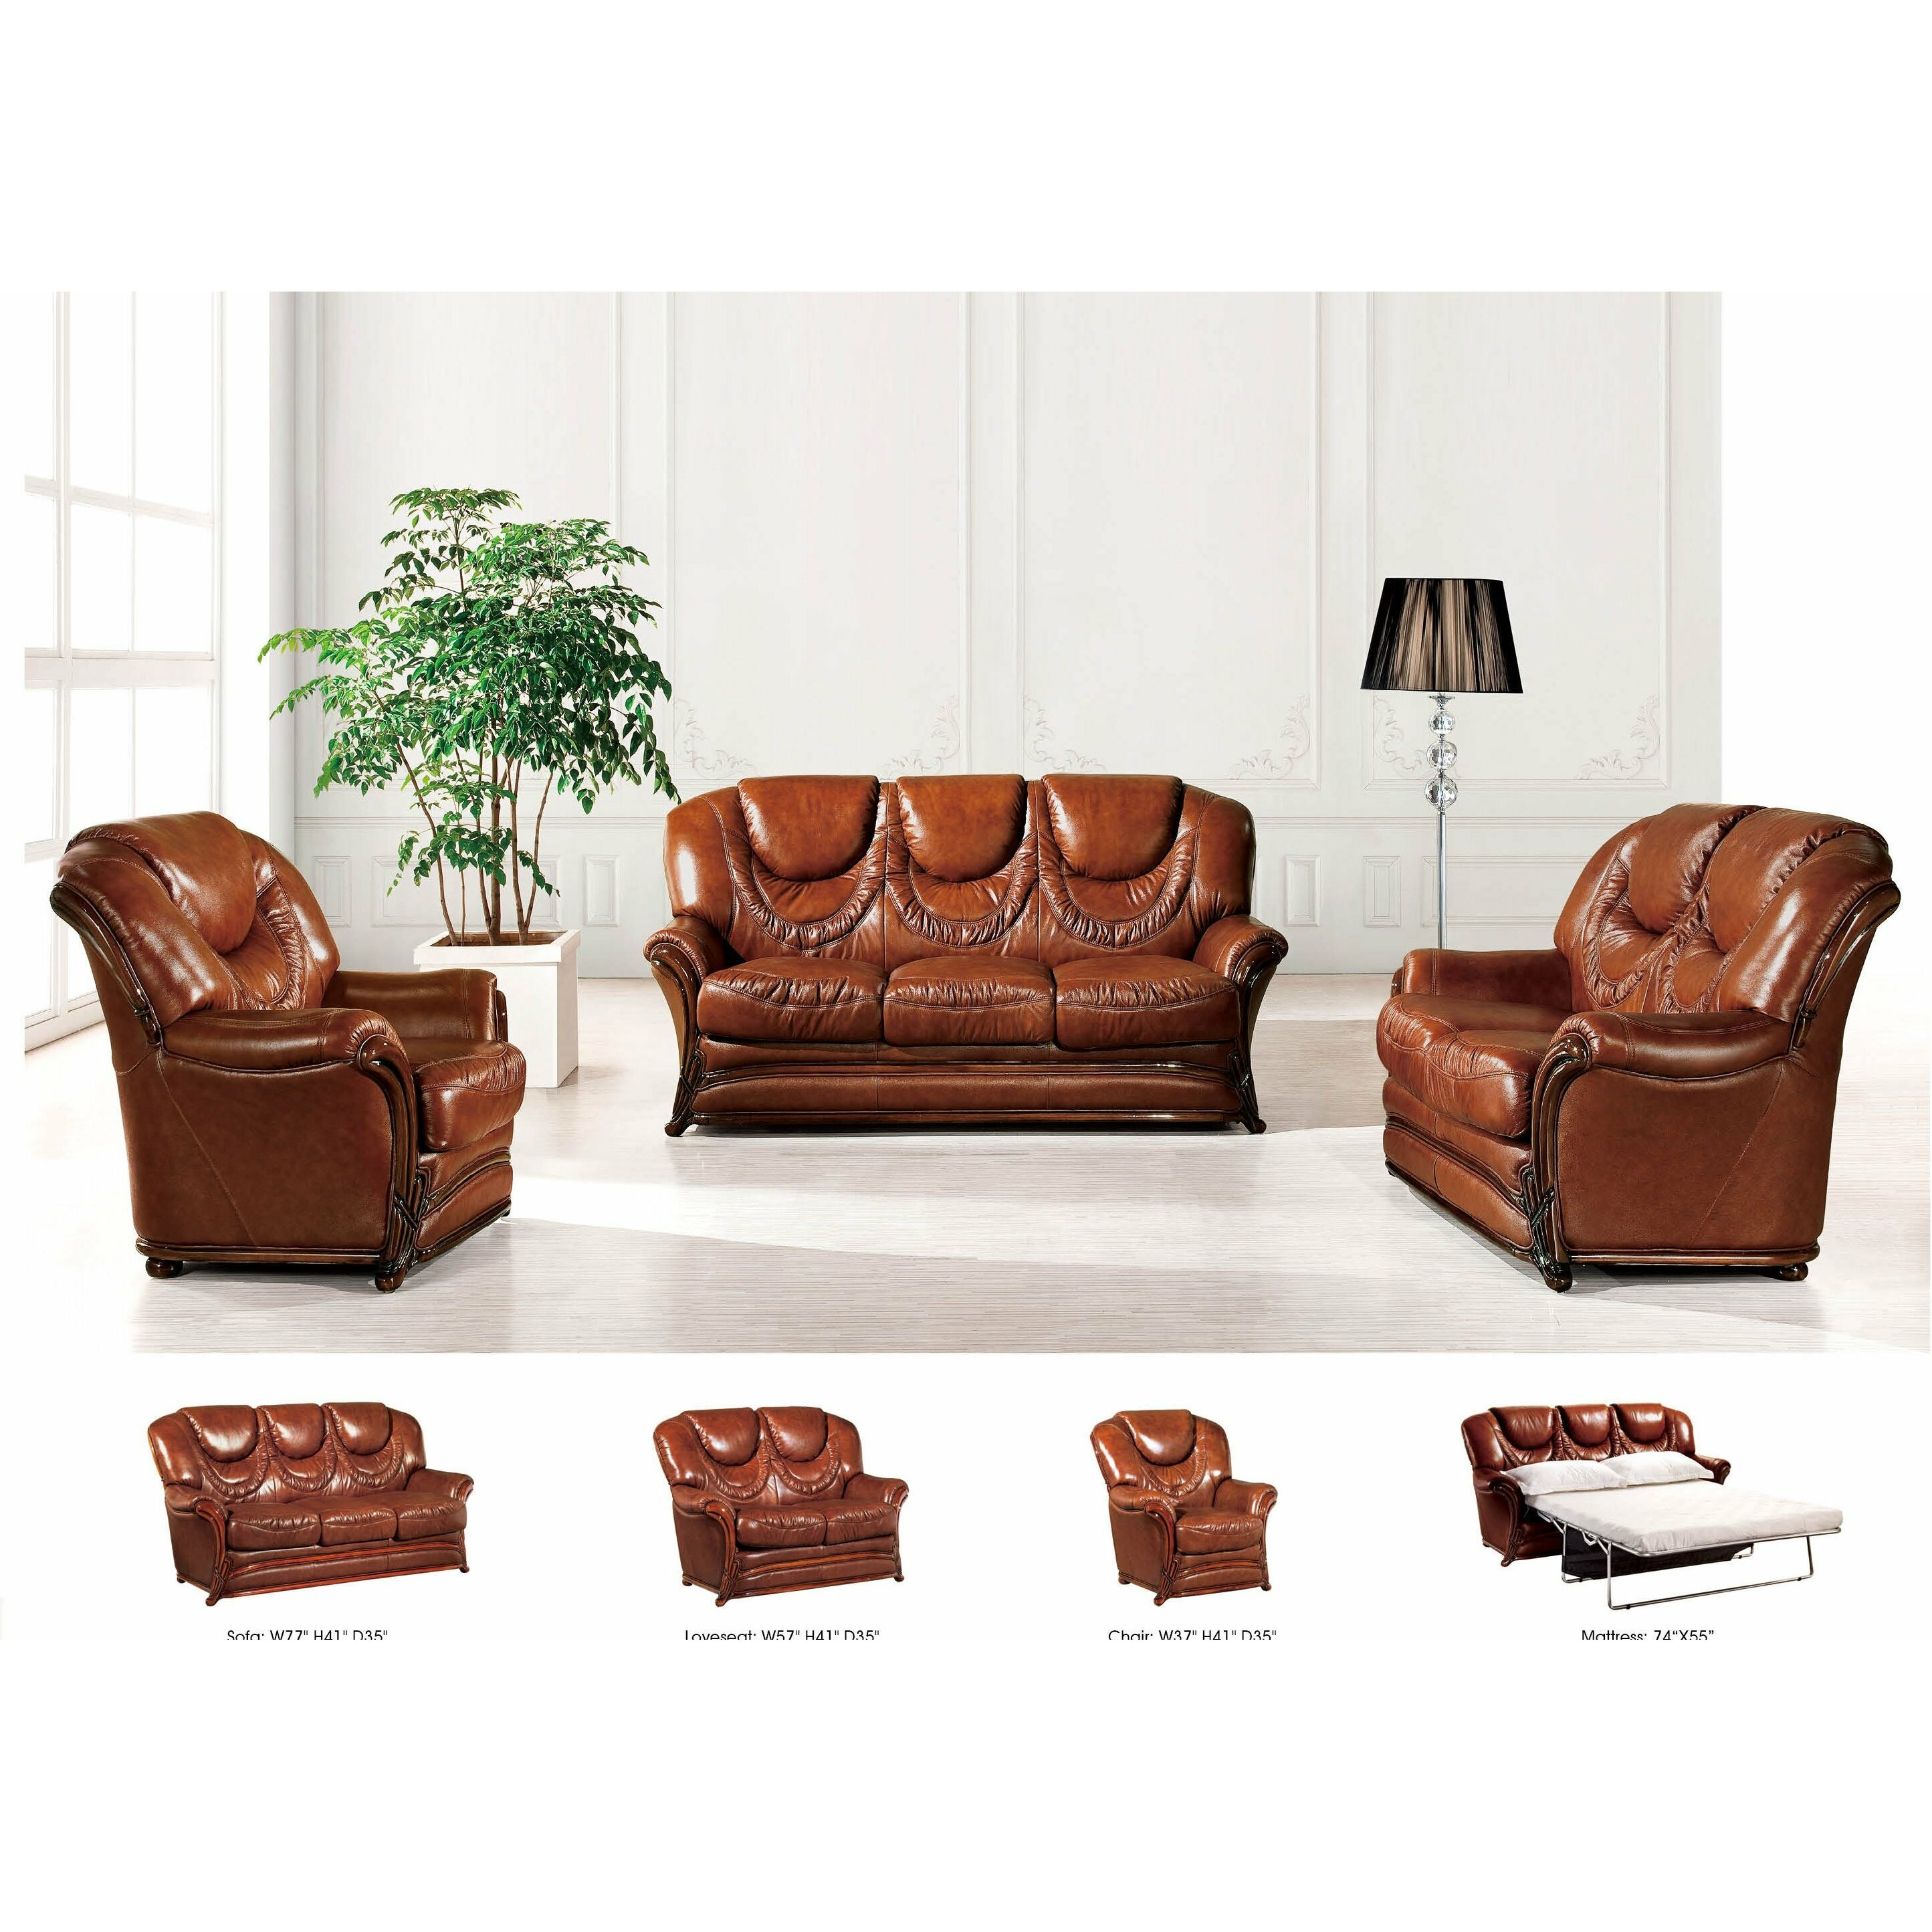 Nocidesign 3 Piece Leather Living Room Set Wayfair